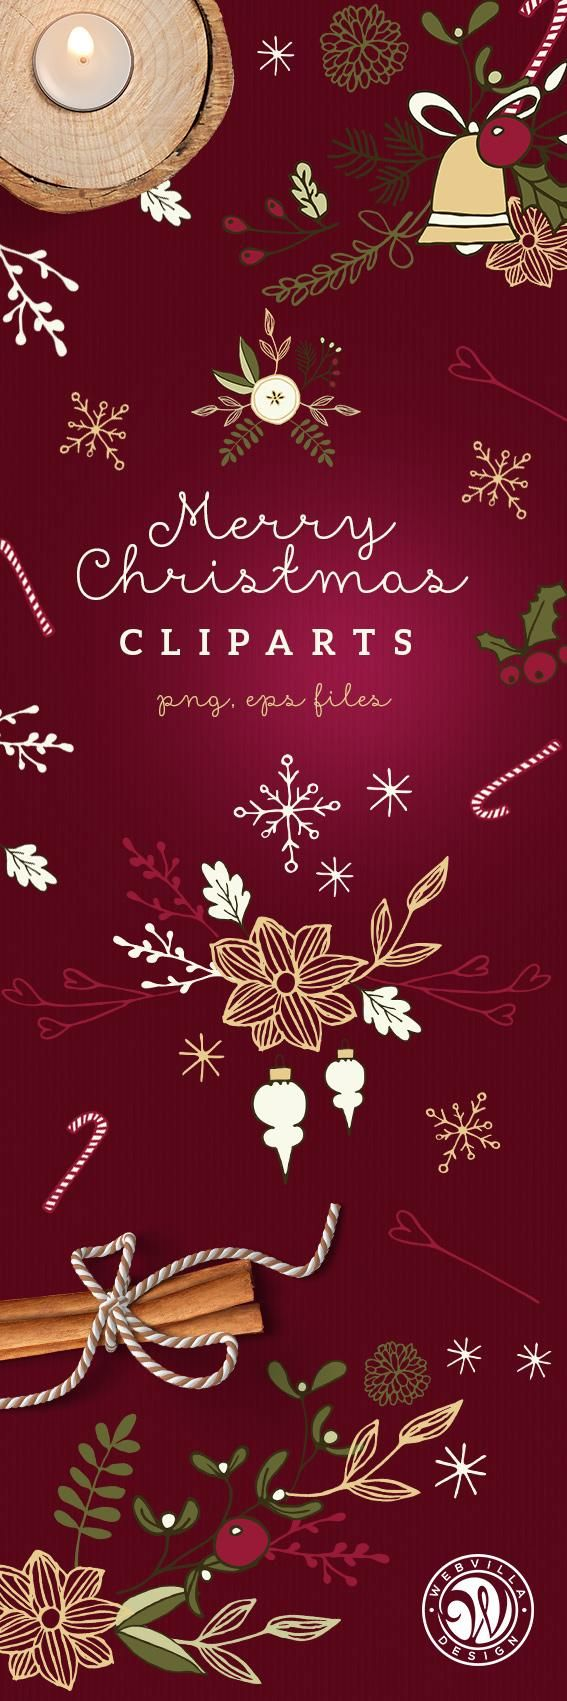 Christmas Cliparts tall pin - image 1 - student project